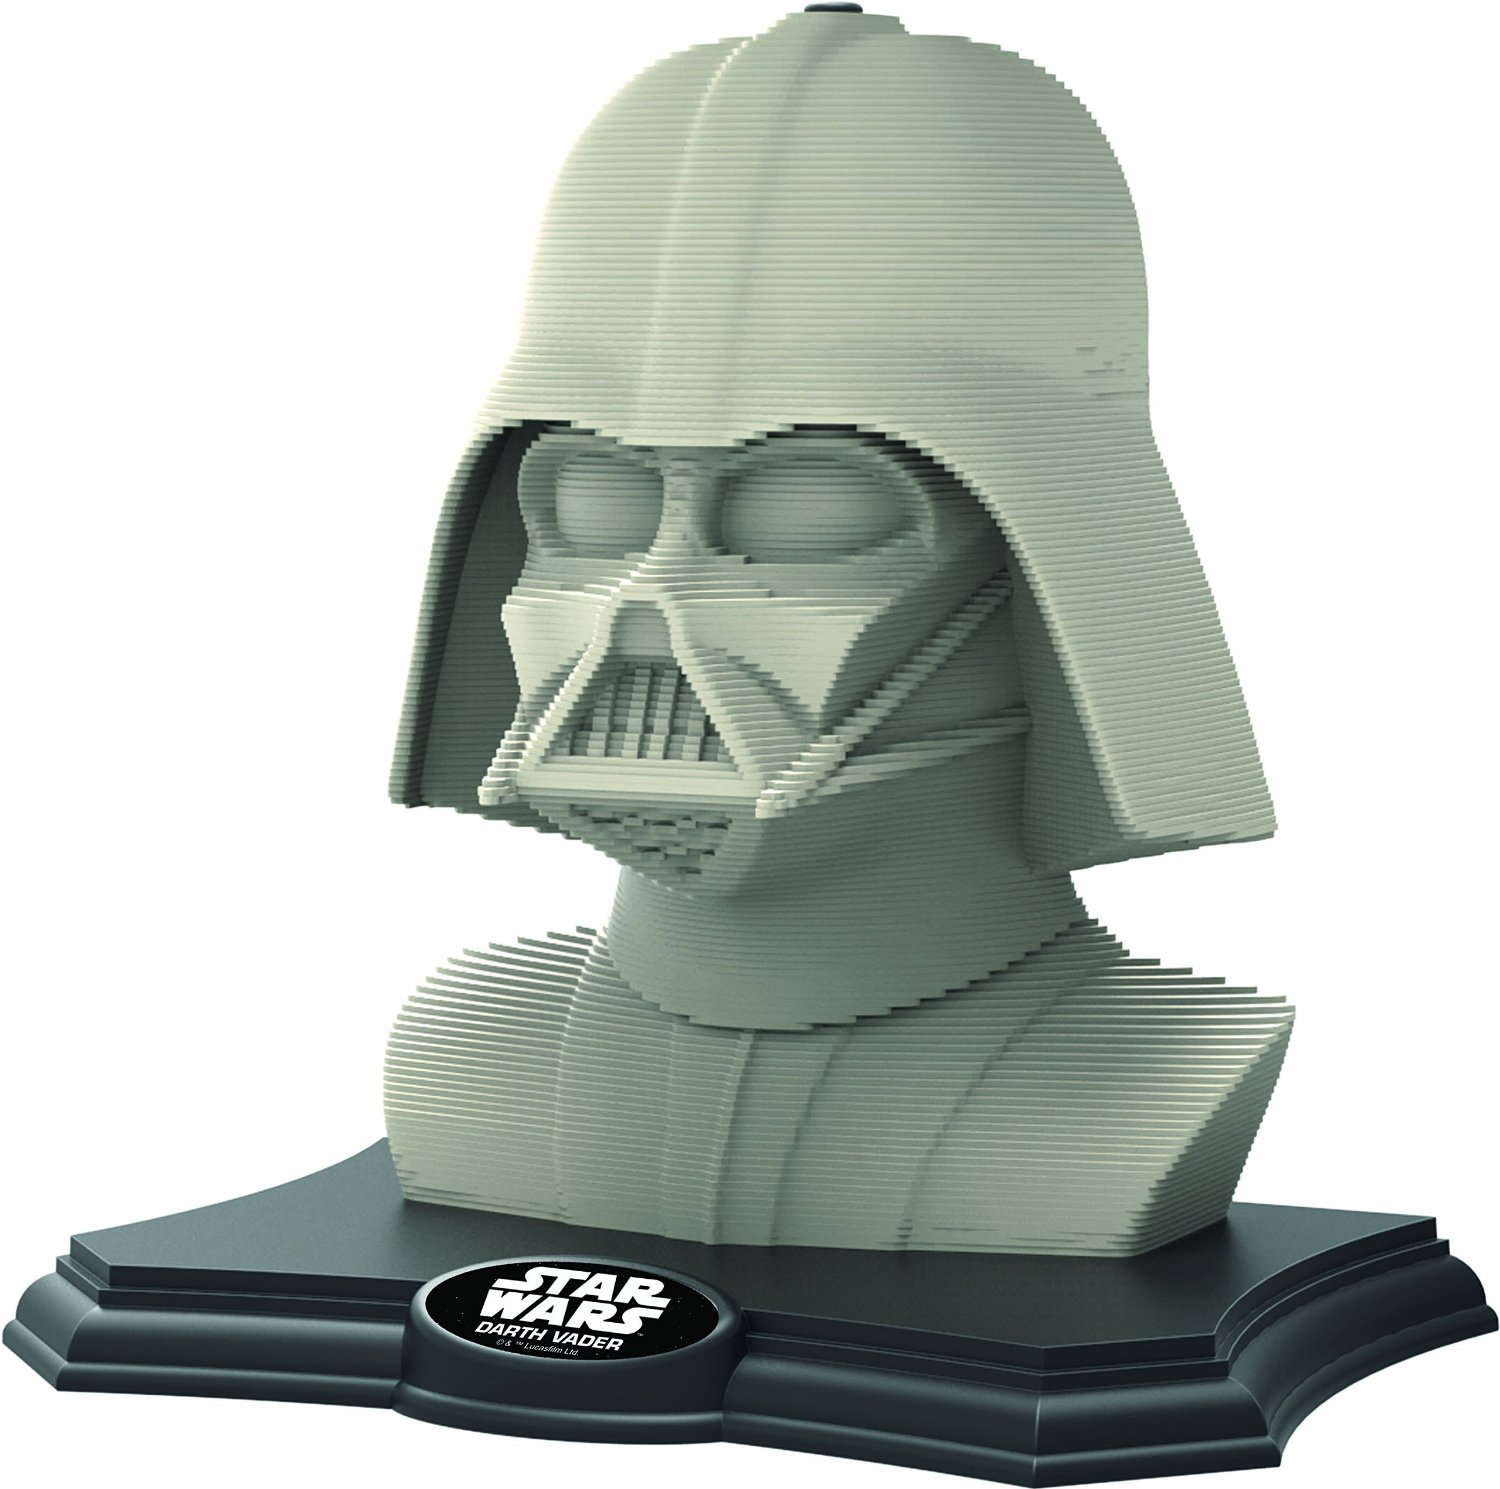 3D Sculpture Puzzle - Star Wars - Darth Vader